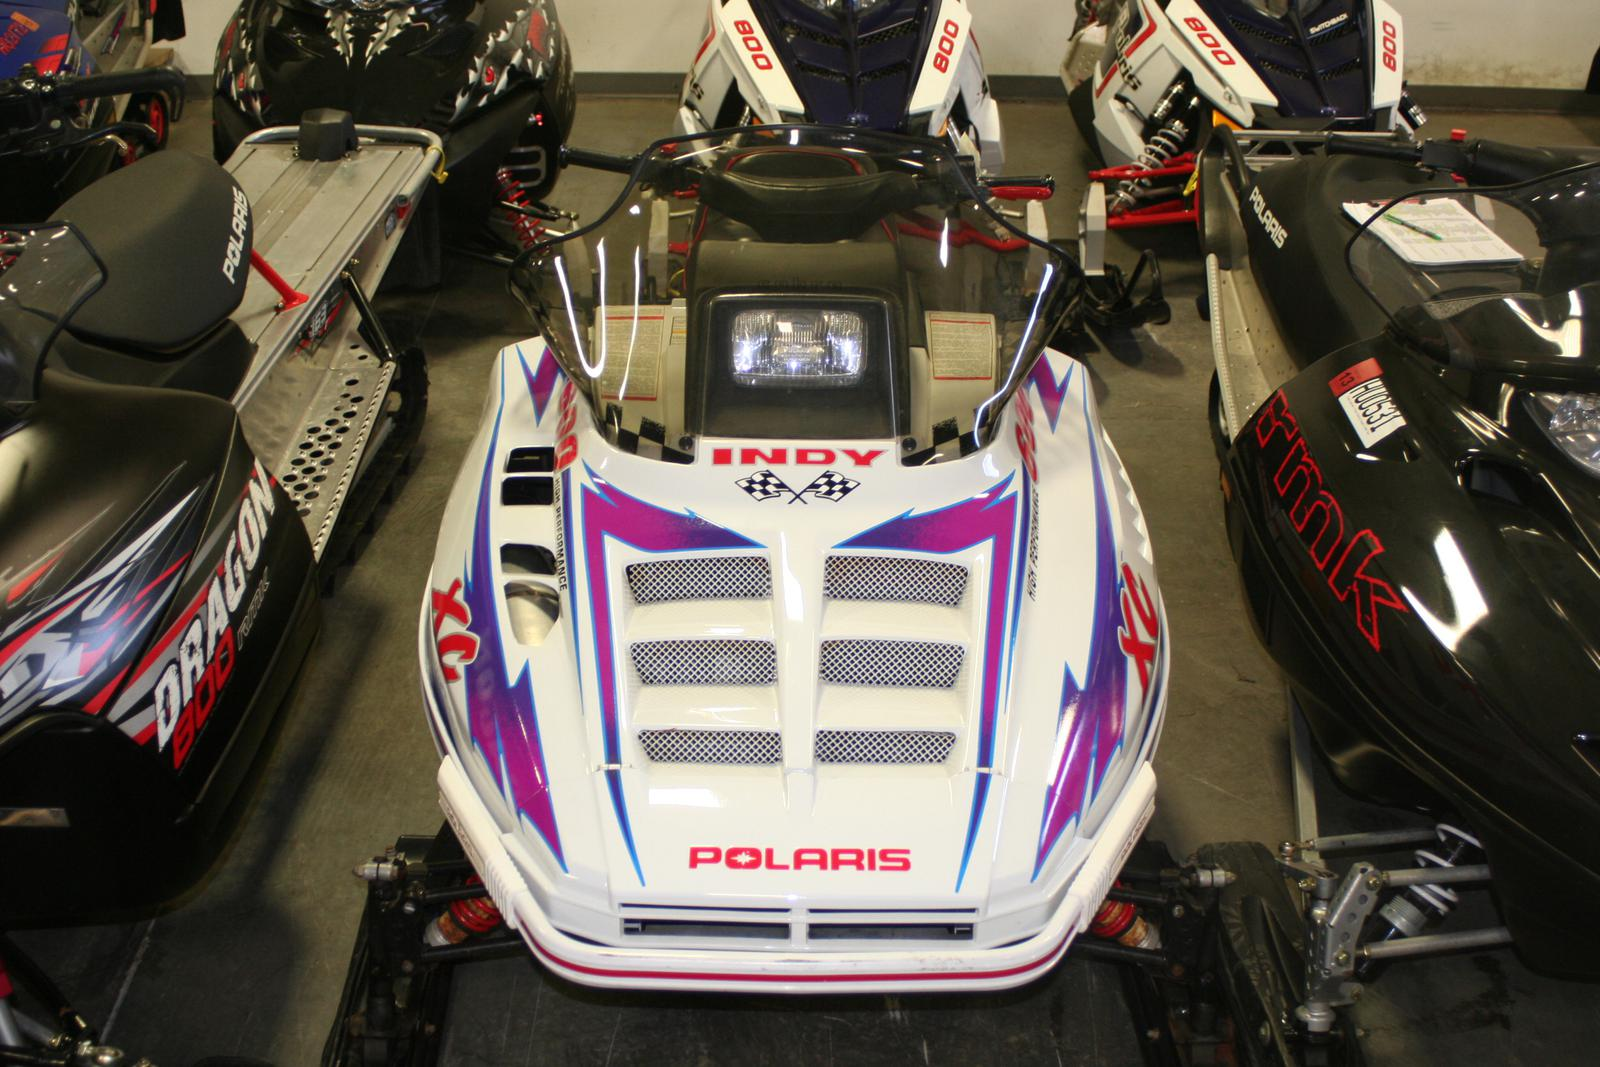 Car Auctions Mn >> 1998 Polaris 600 XC Motorcycle From Watkins, MN,Today Sale $2,199 - MotorcycleForSales.com